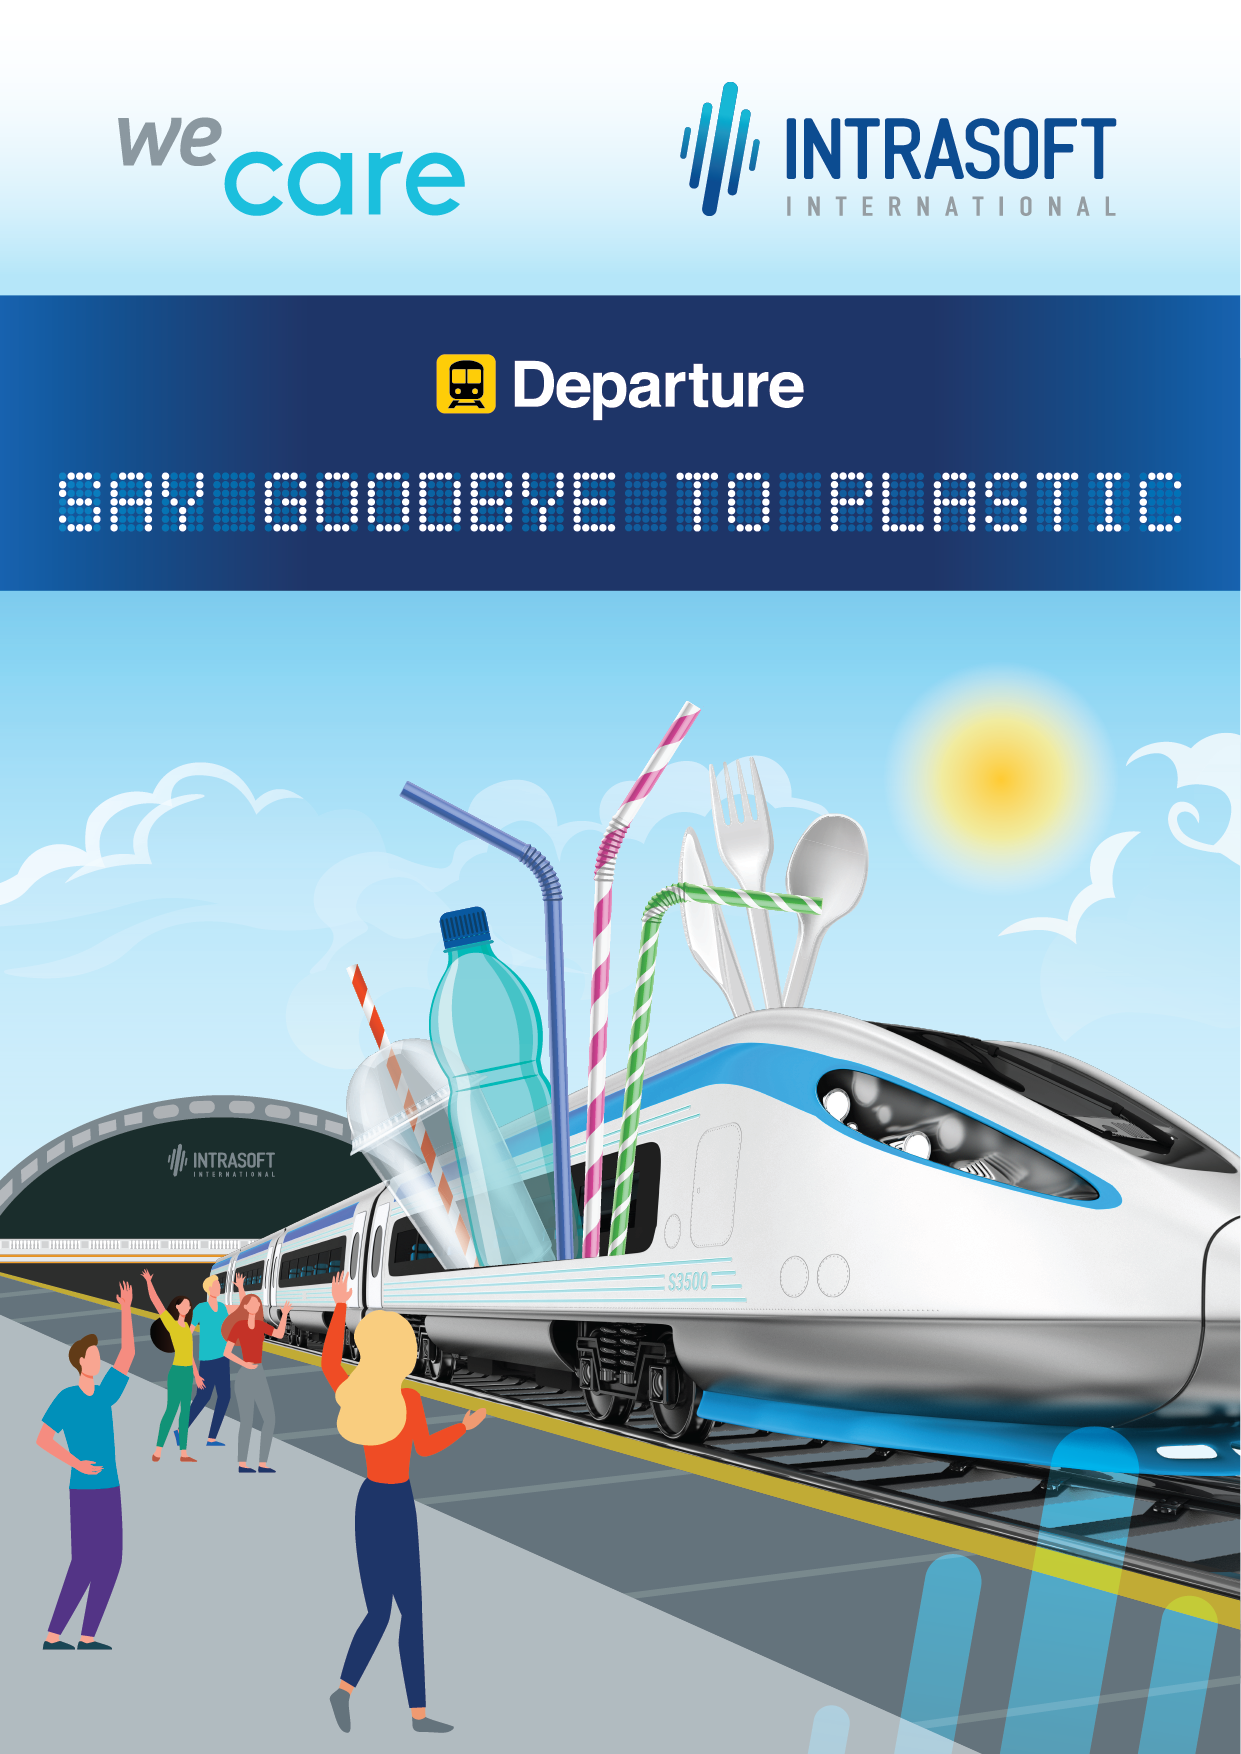 intrasoft_international_-_say_goodbye_to_plastic_1241x1754.png